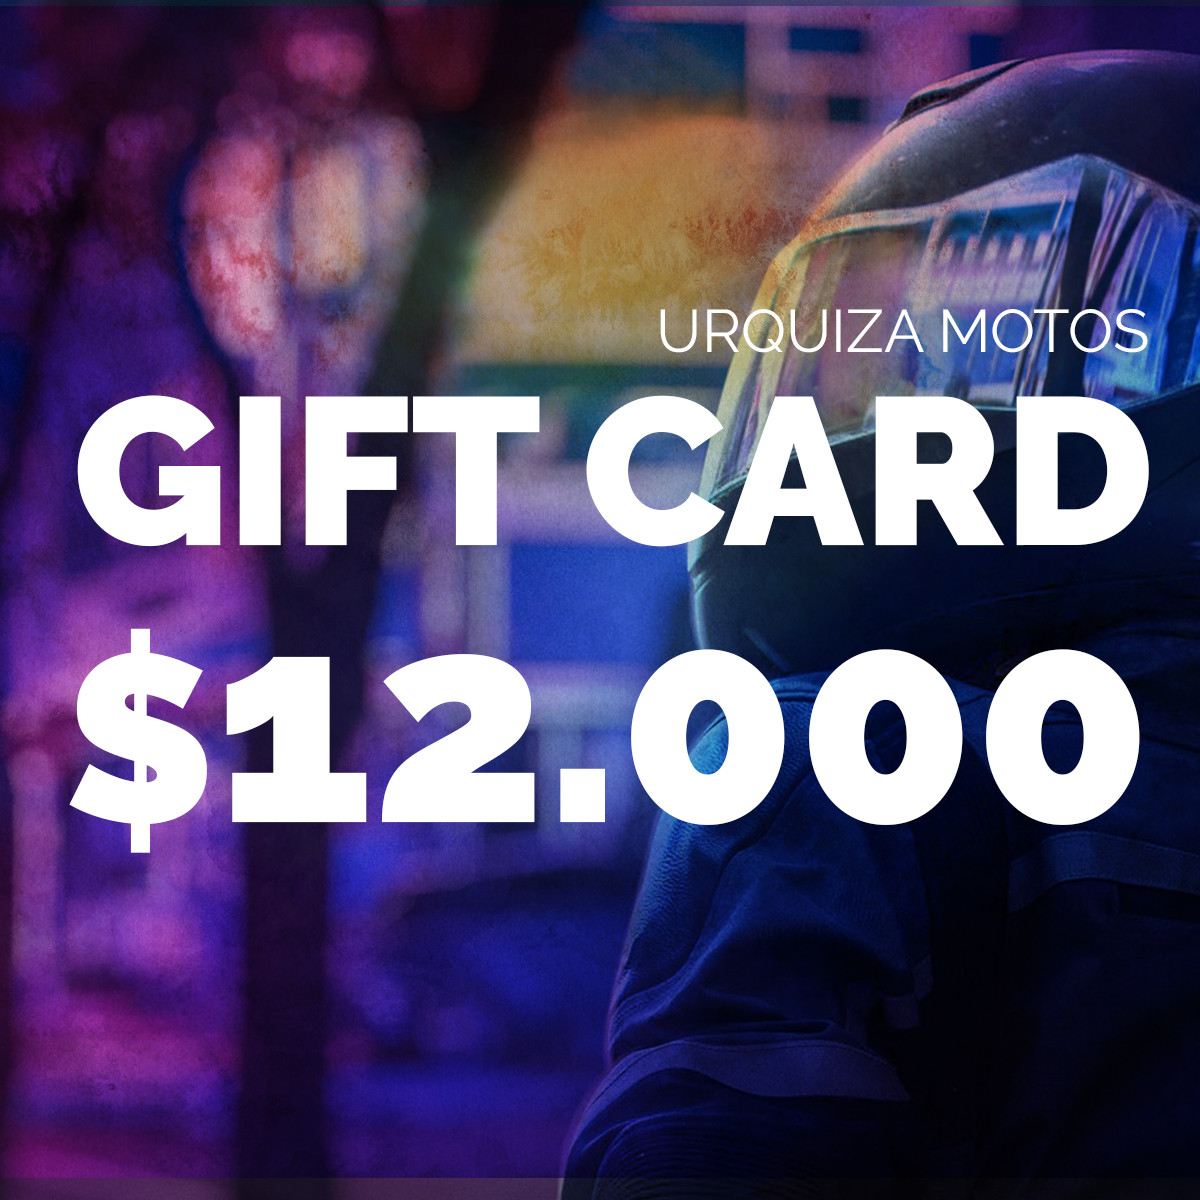 Gift Card $12.000